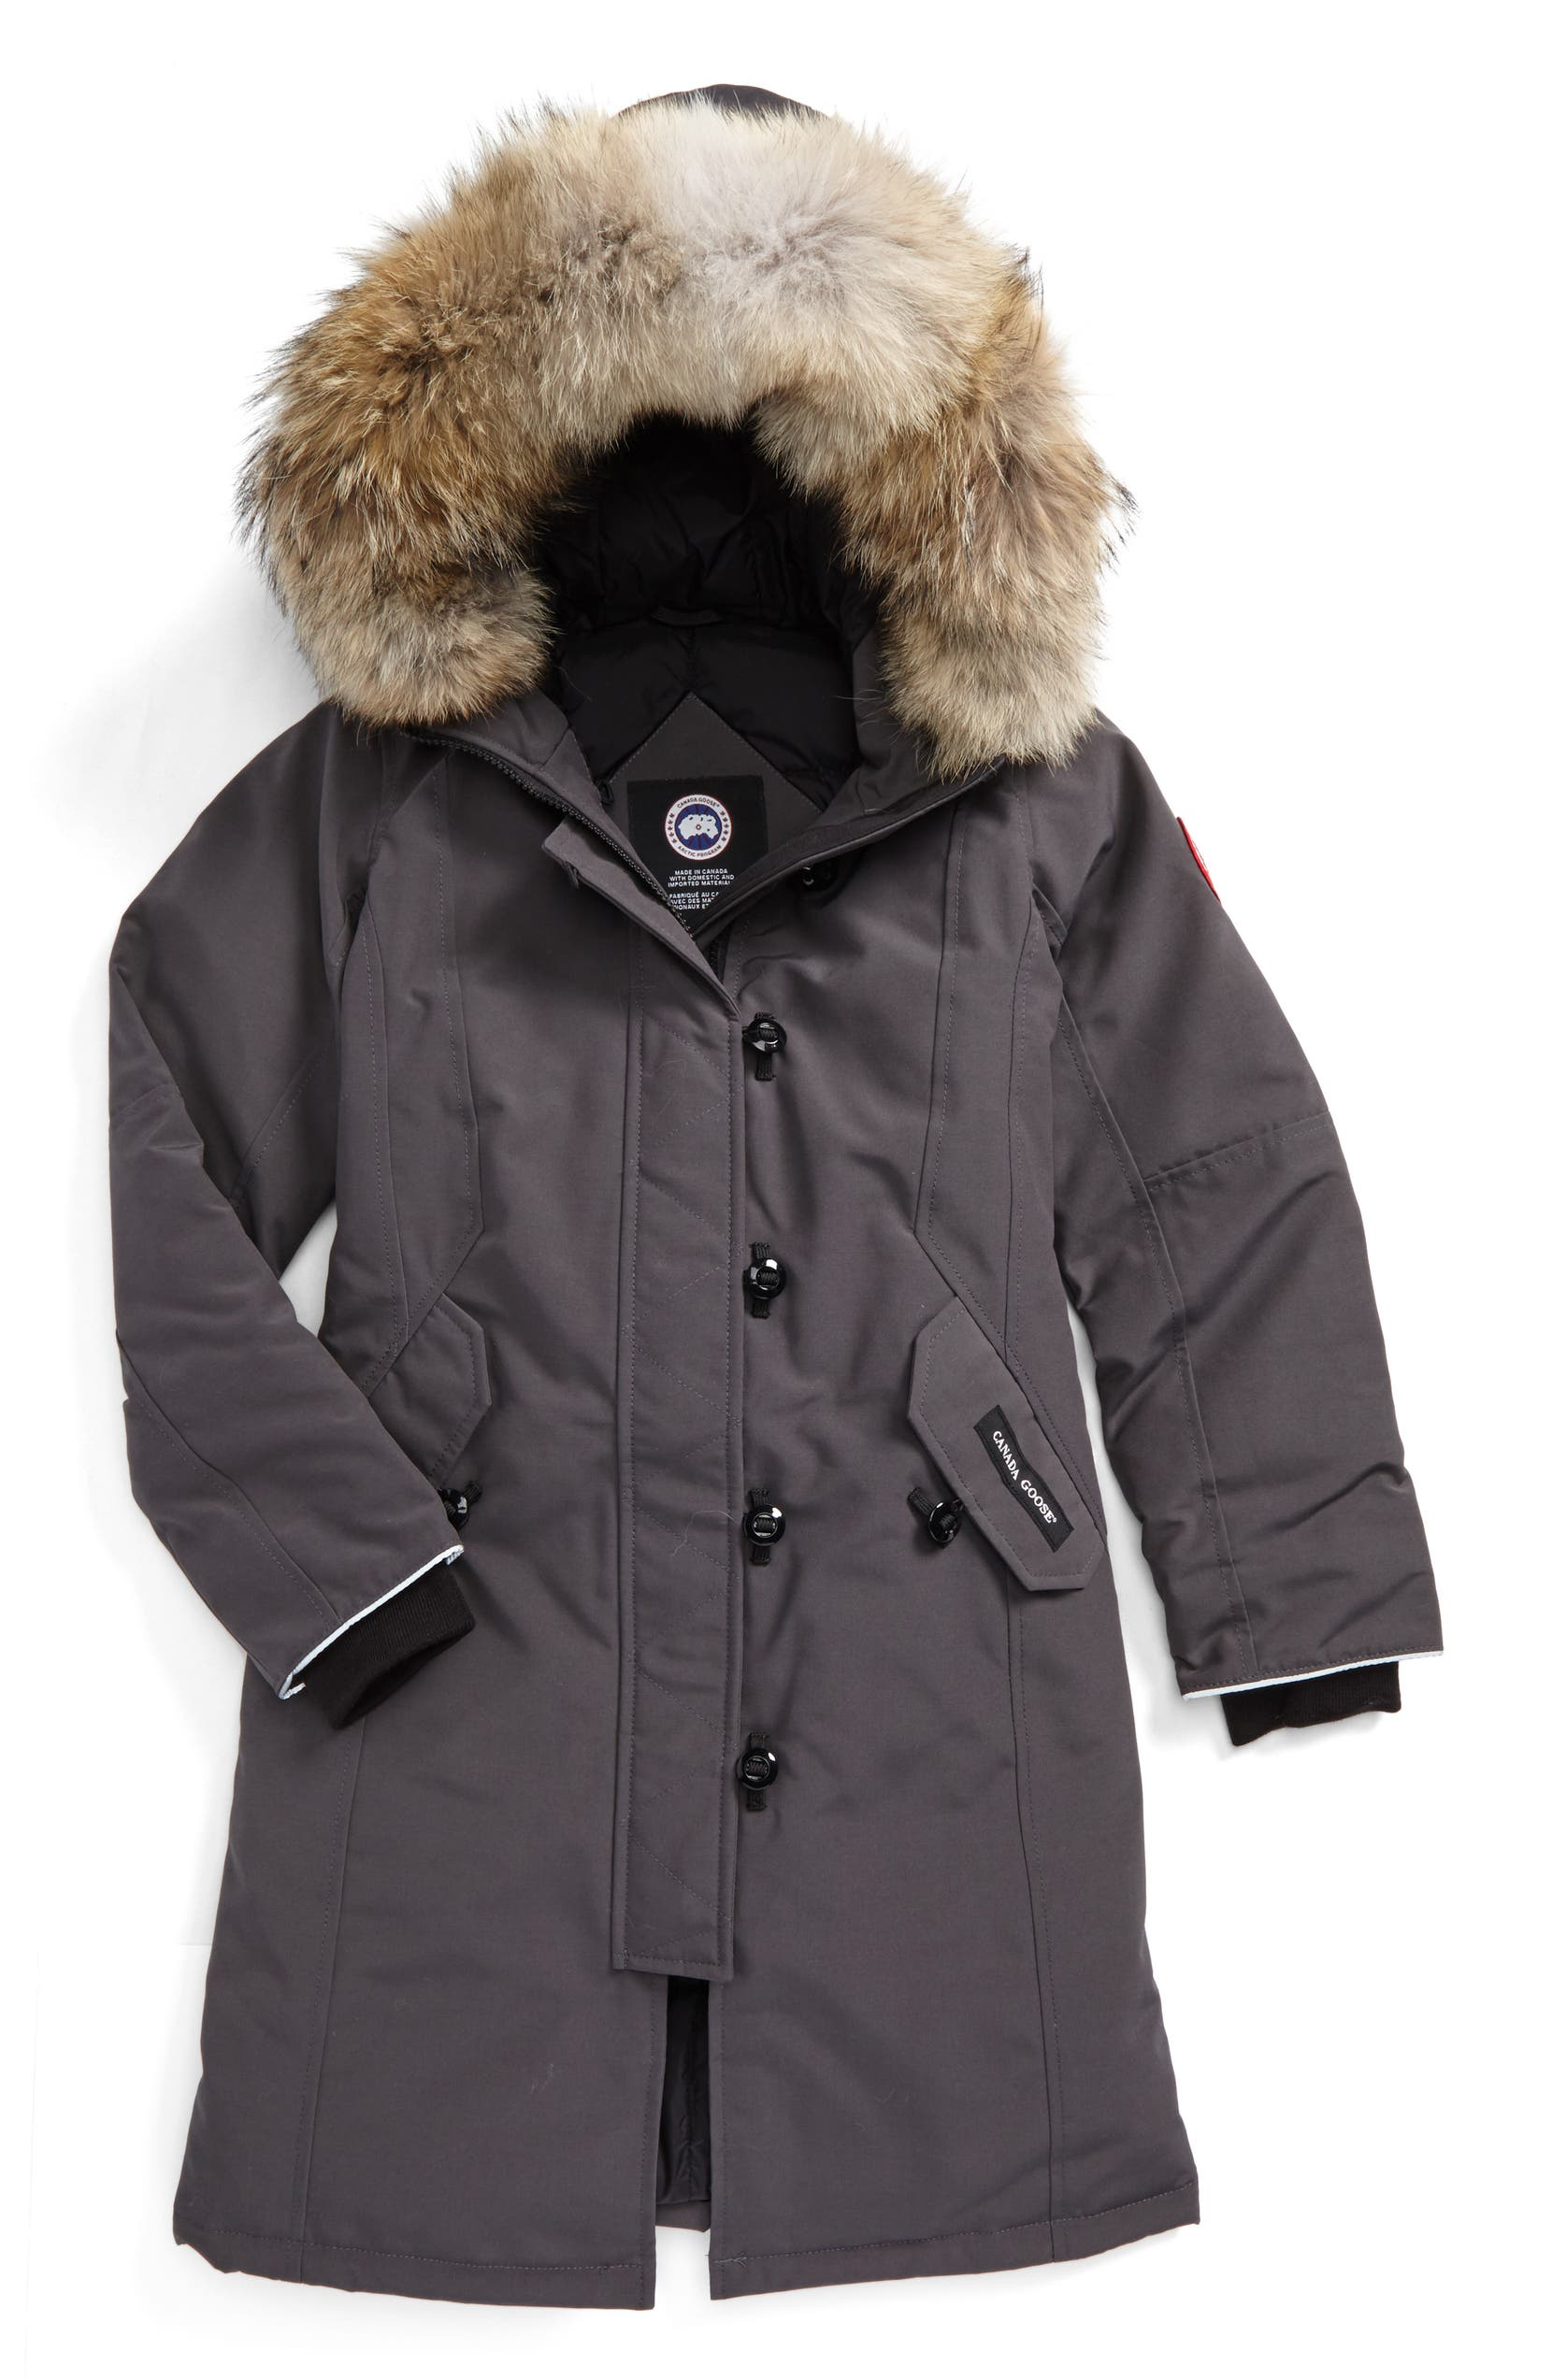 Canada Goose 'Brittania' Down Parka with Genuine Coyote Fur Trim (Little Kid & Big Kid) | Nordstrom